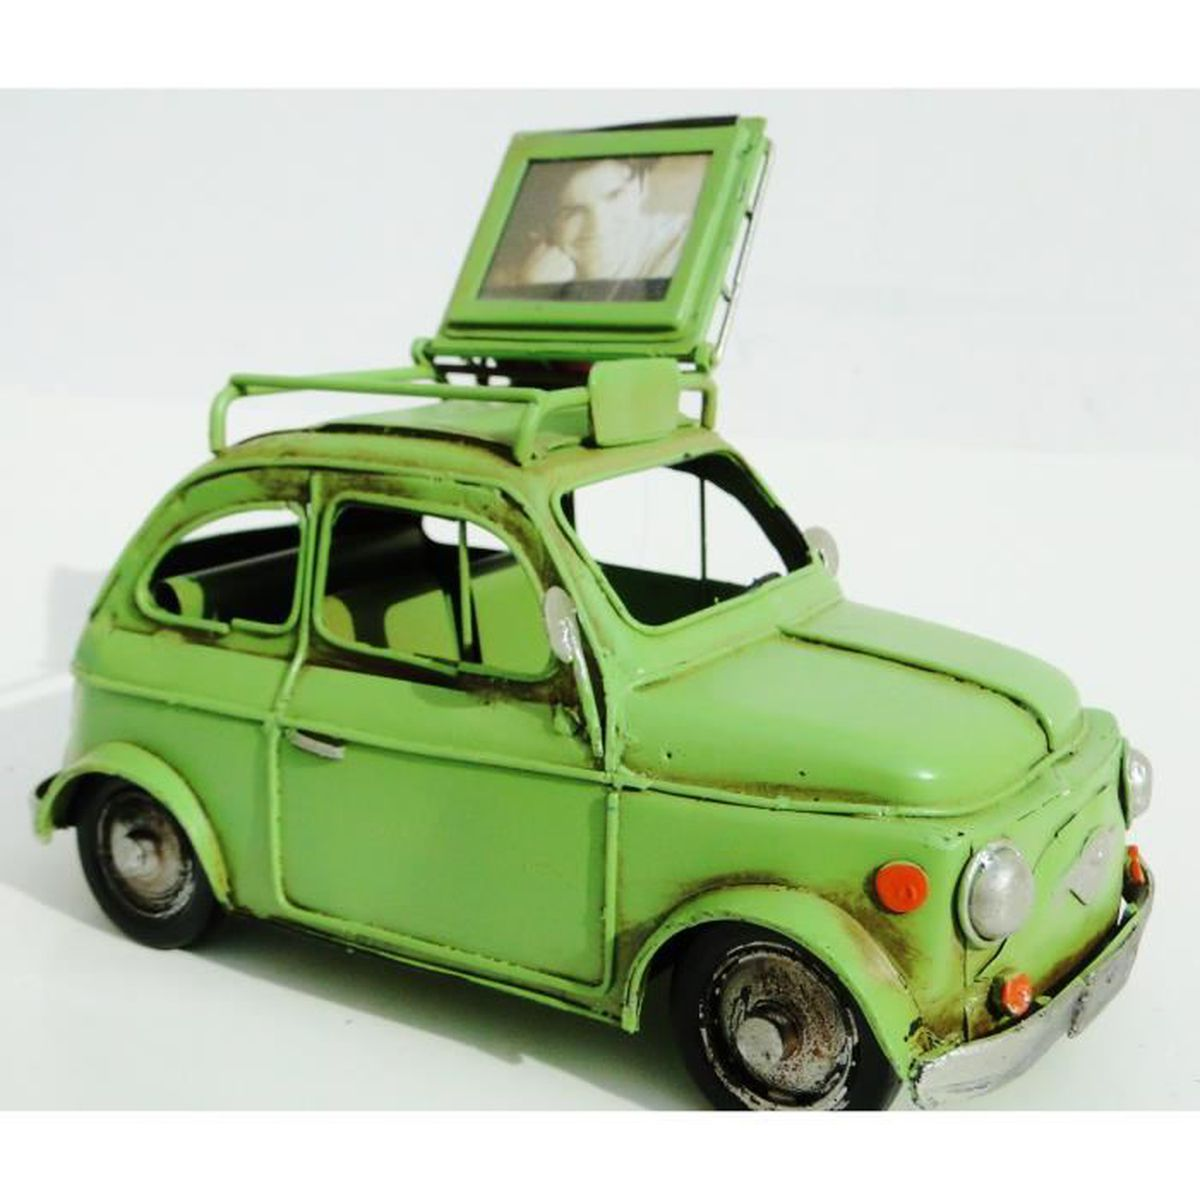 ancienne fiat 500 miniature en t le galerie porte bagages cadre porte photo vintage sixties vert. Black Bedroom Furniture Sets. Home Design Ideas